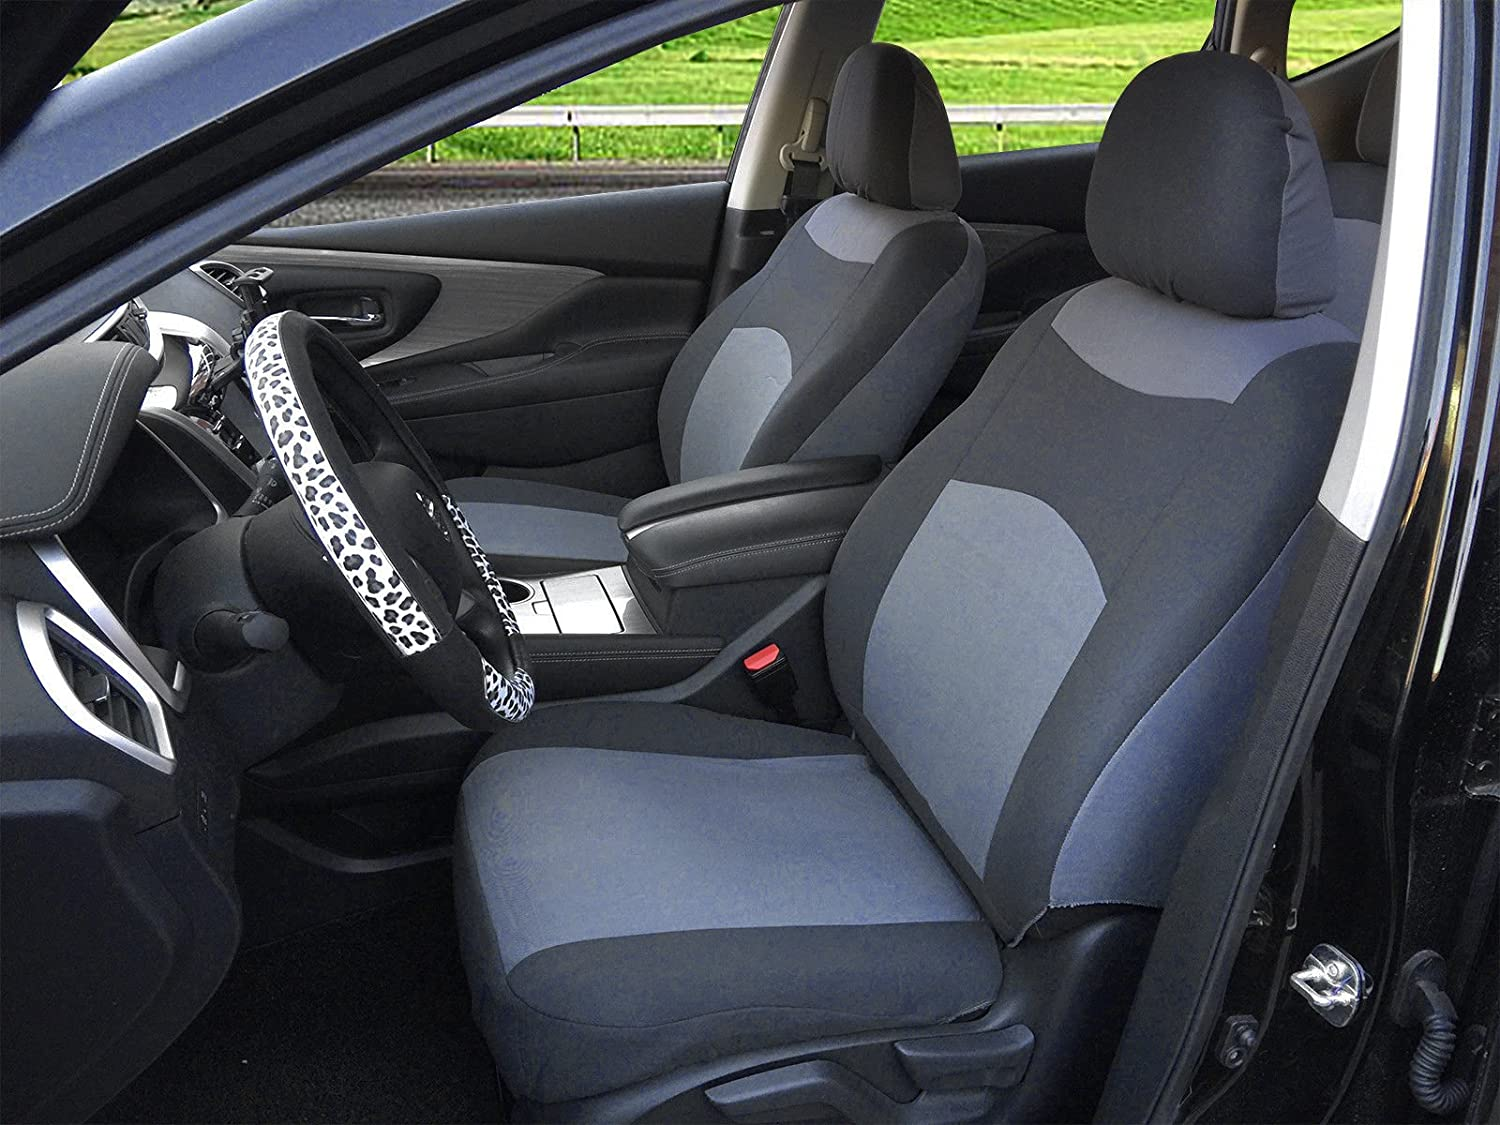 Protech 116002 Front Car Seat Cover